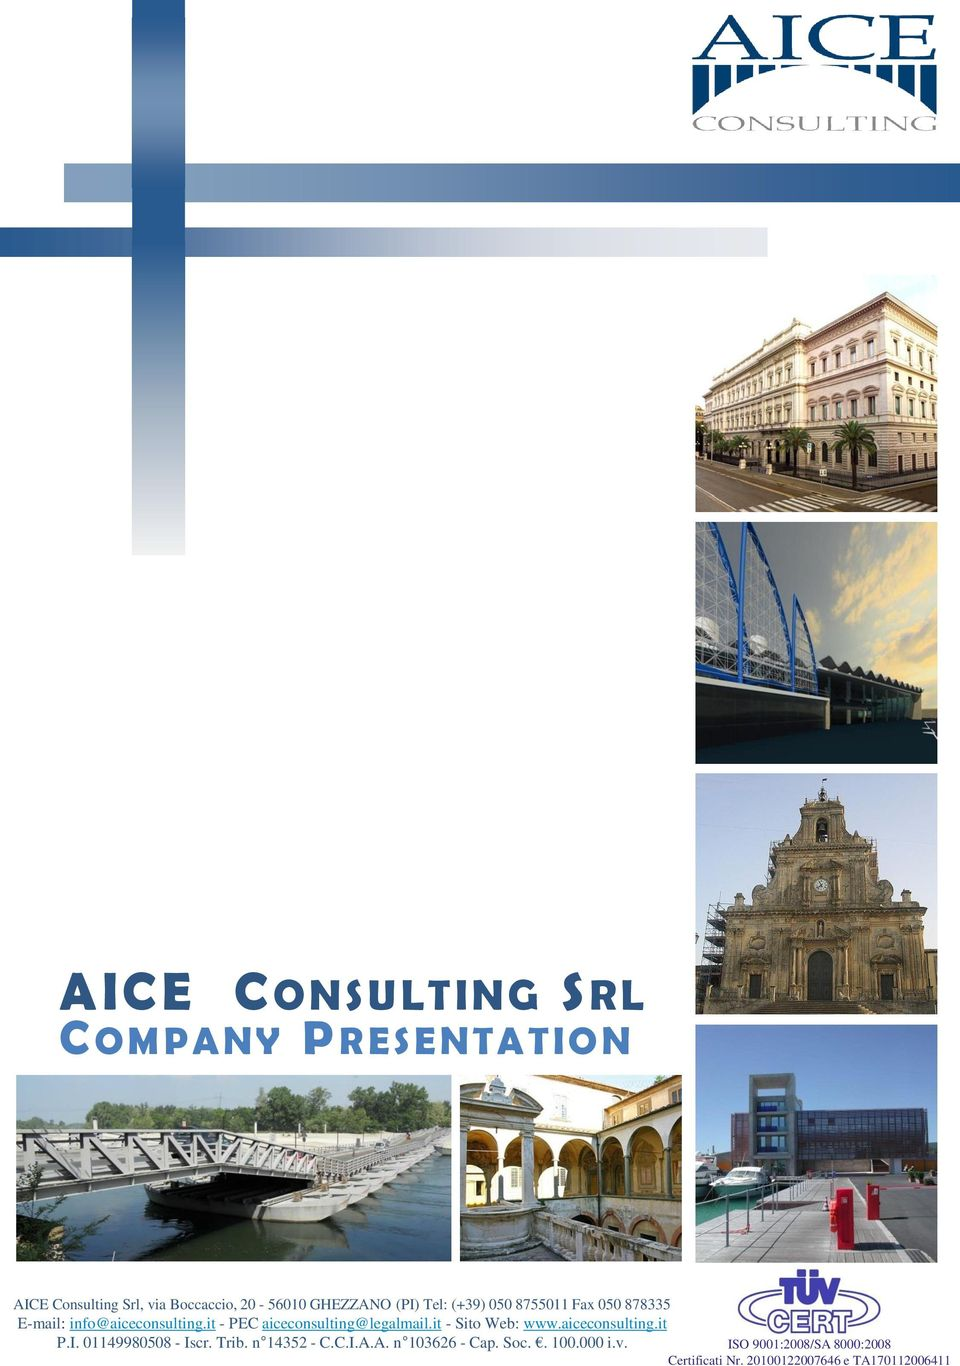 info@aiceconsulting.it - PEC aiceconsulting@legalmail.it - Sito Web: www.